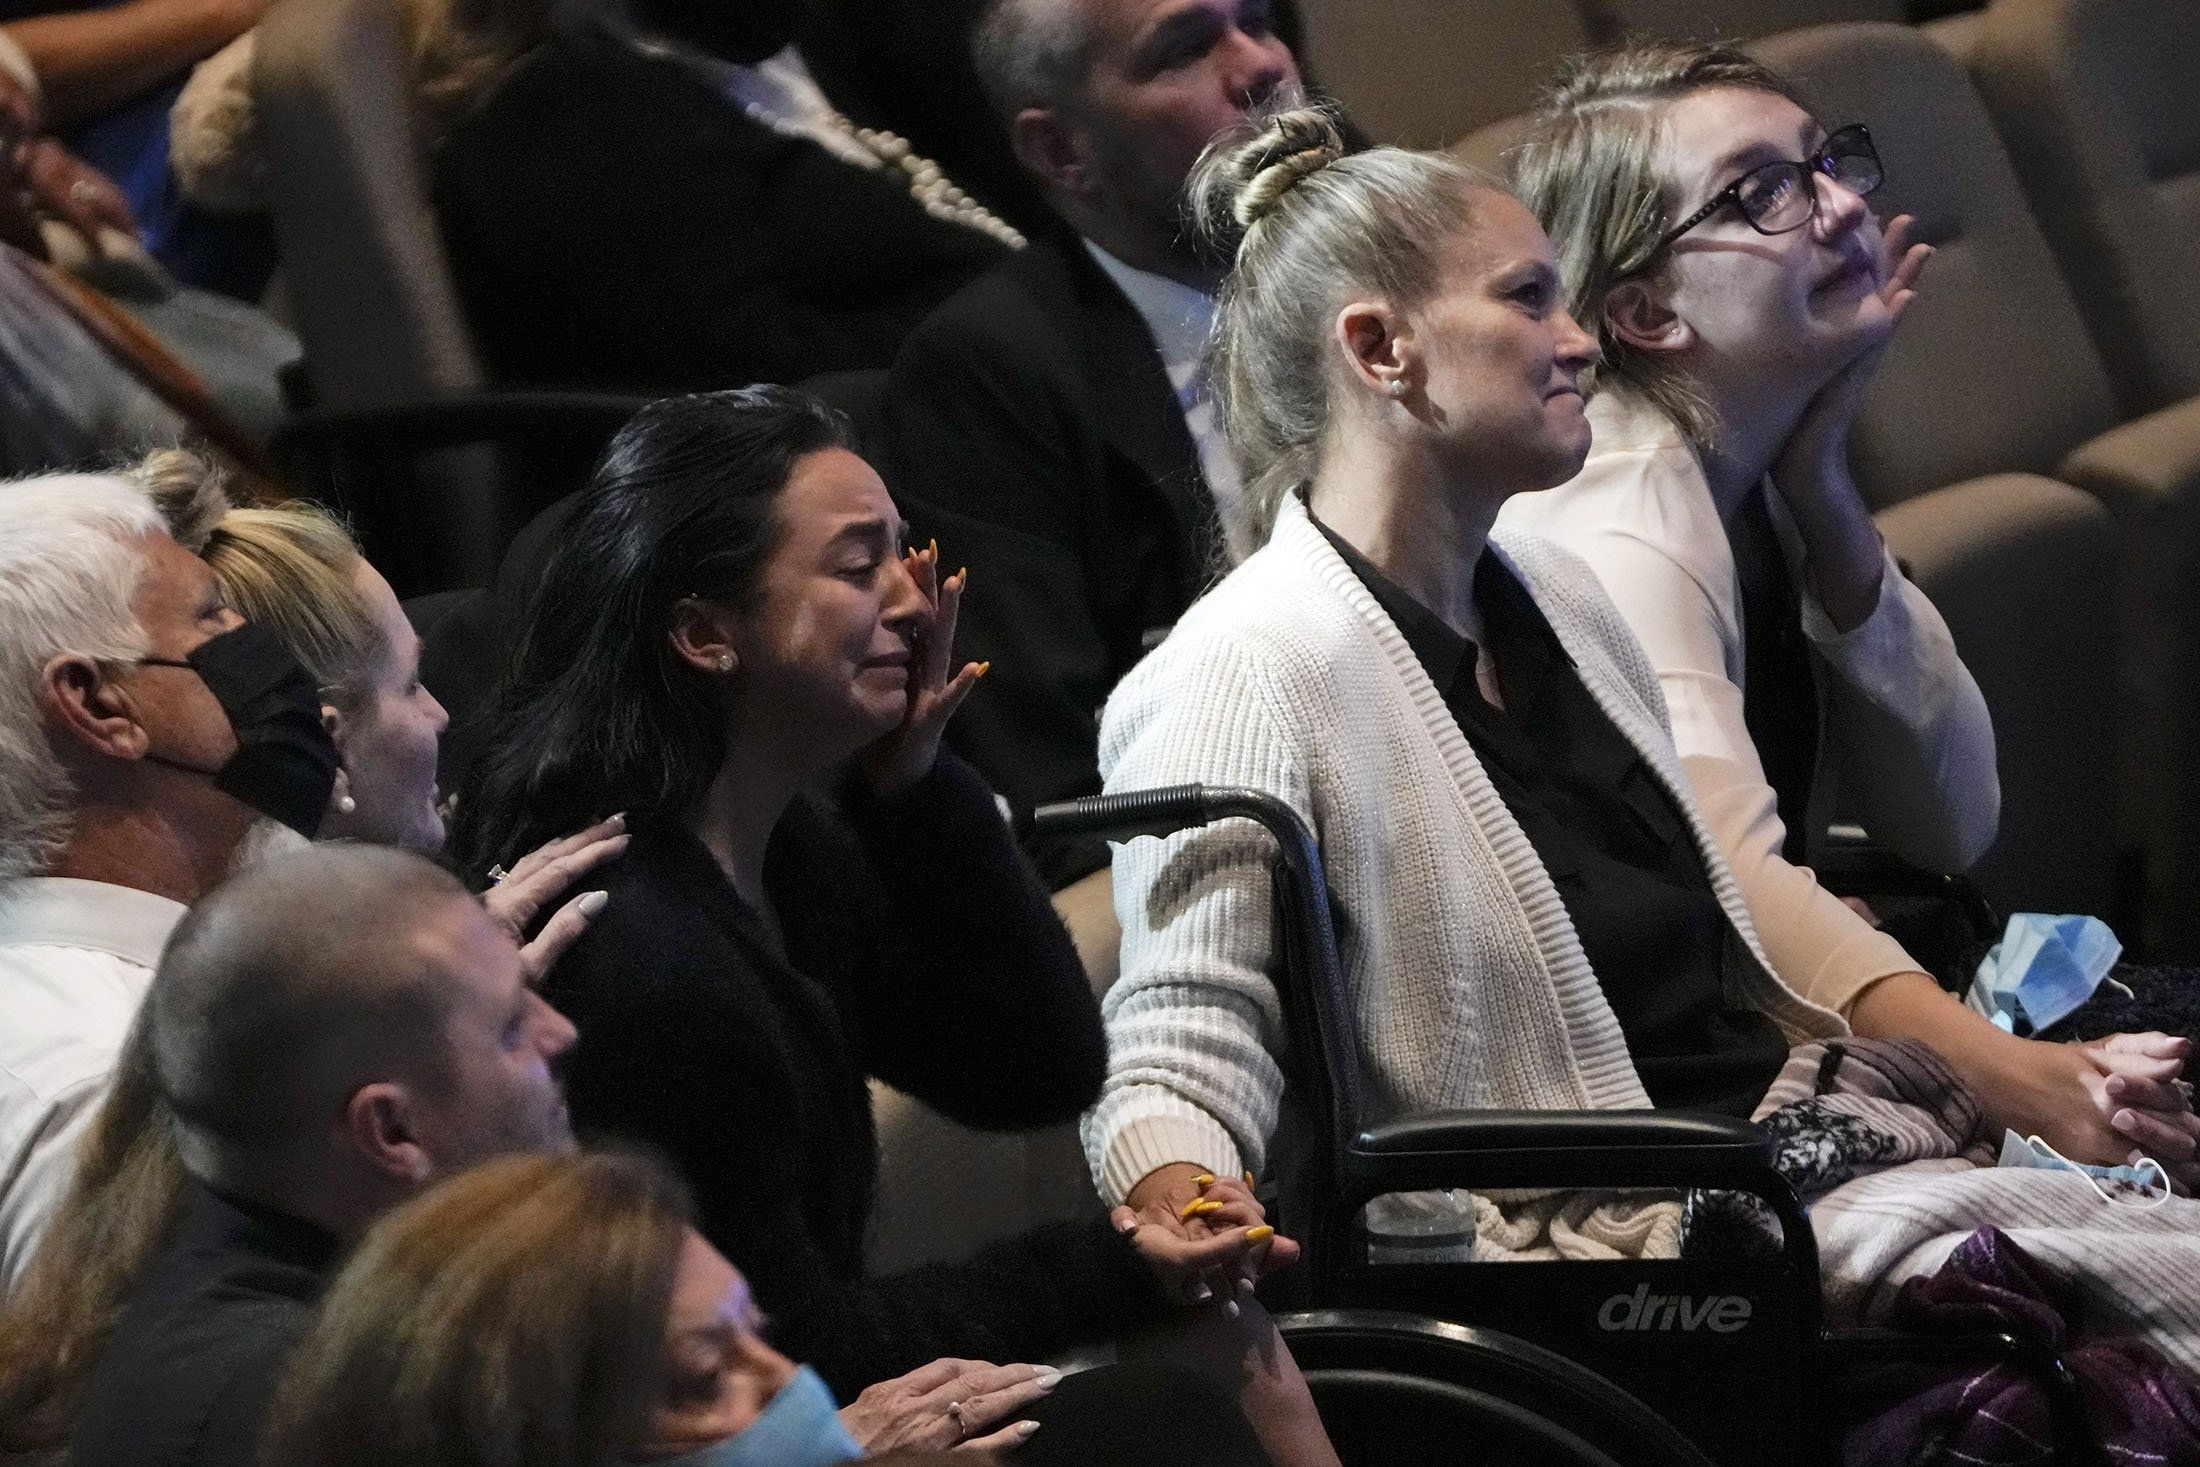 Angela Gonzalez (C-R), holds hands with her daughters Tayler Scheinhaus (C-L), and Deven Gonzalez (R), during the funeral service for their late husband and father Edgar Gonzalez, in Florida, U.S., July 23, 2021. (AP Photo)